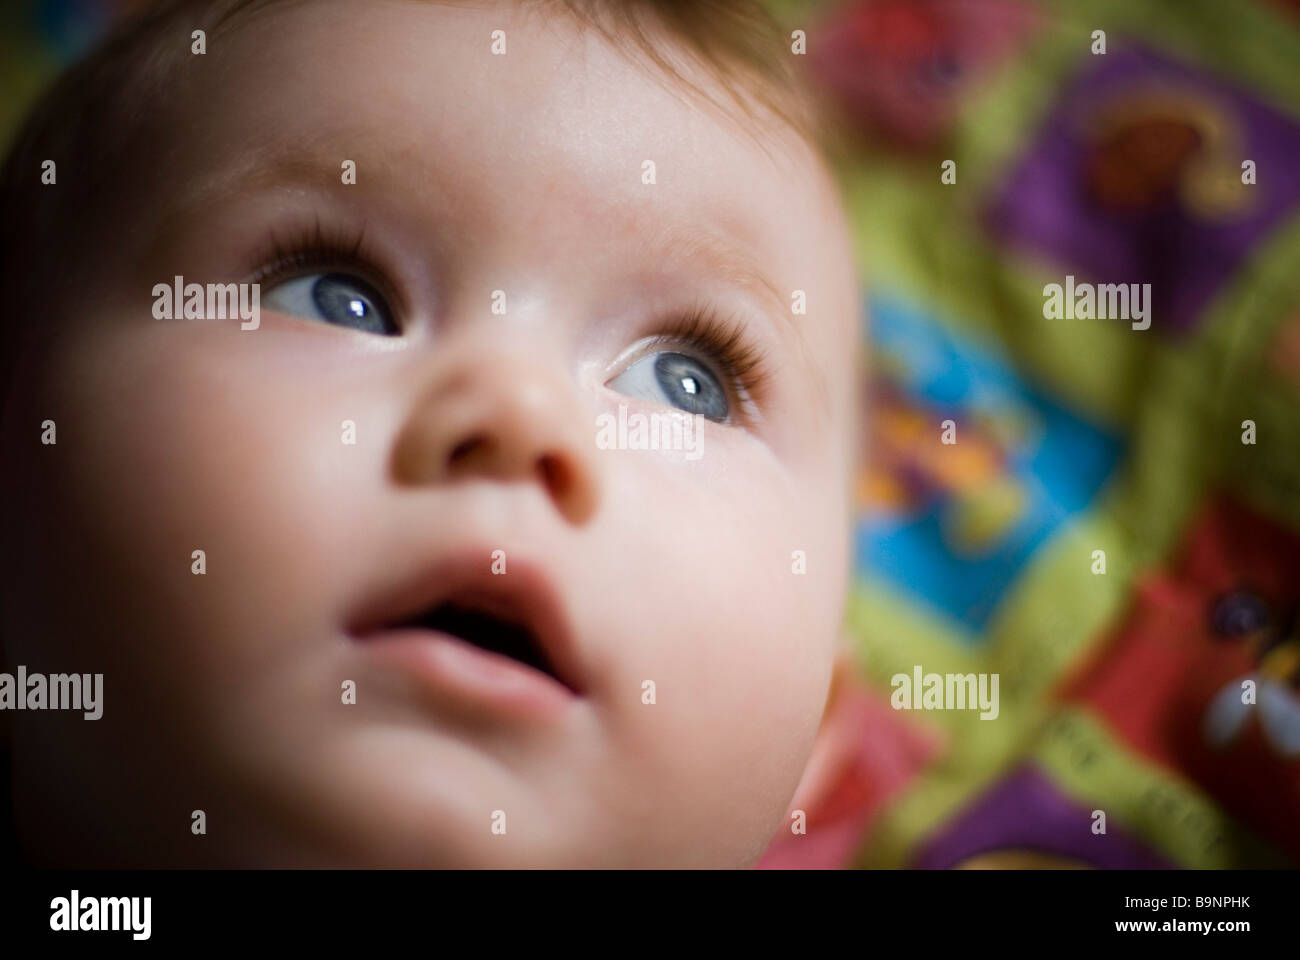 Baby's face close-up - Stock Image